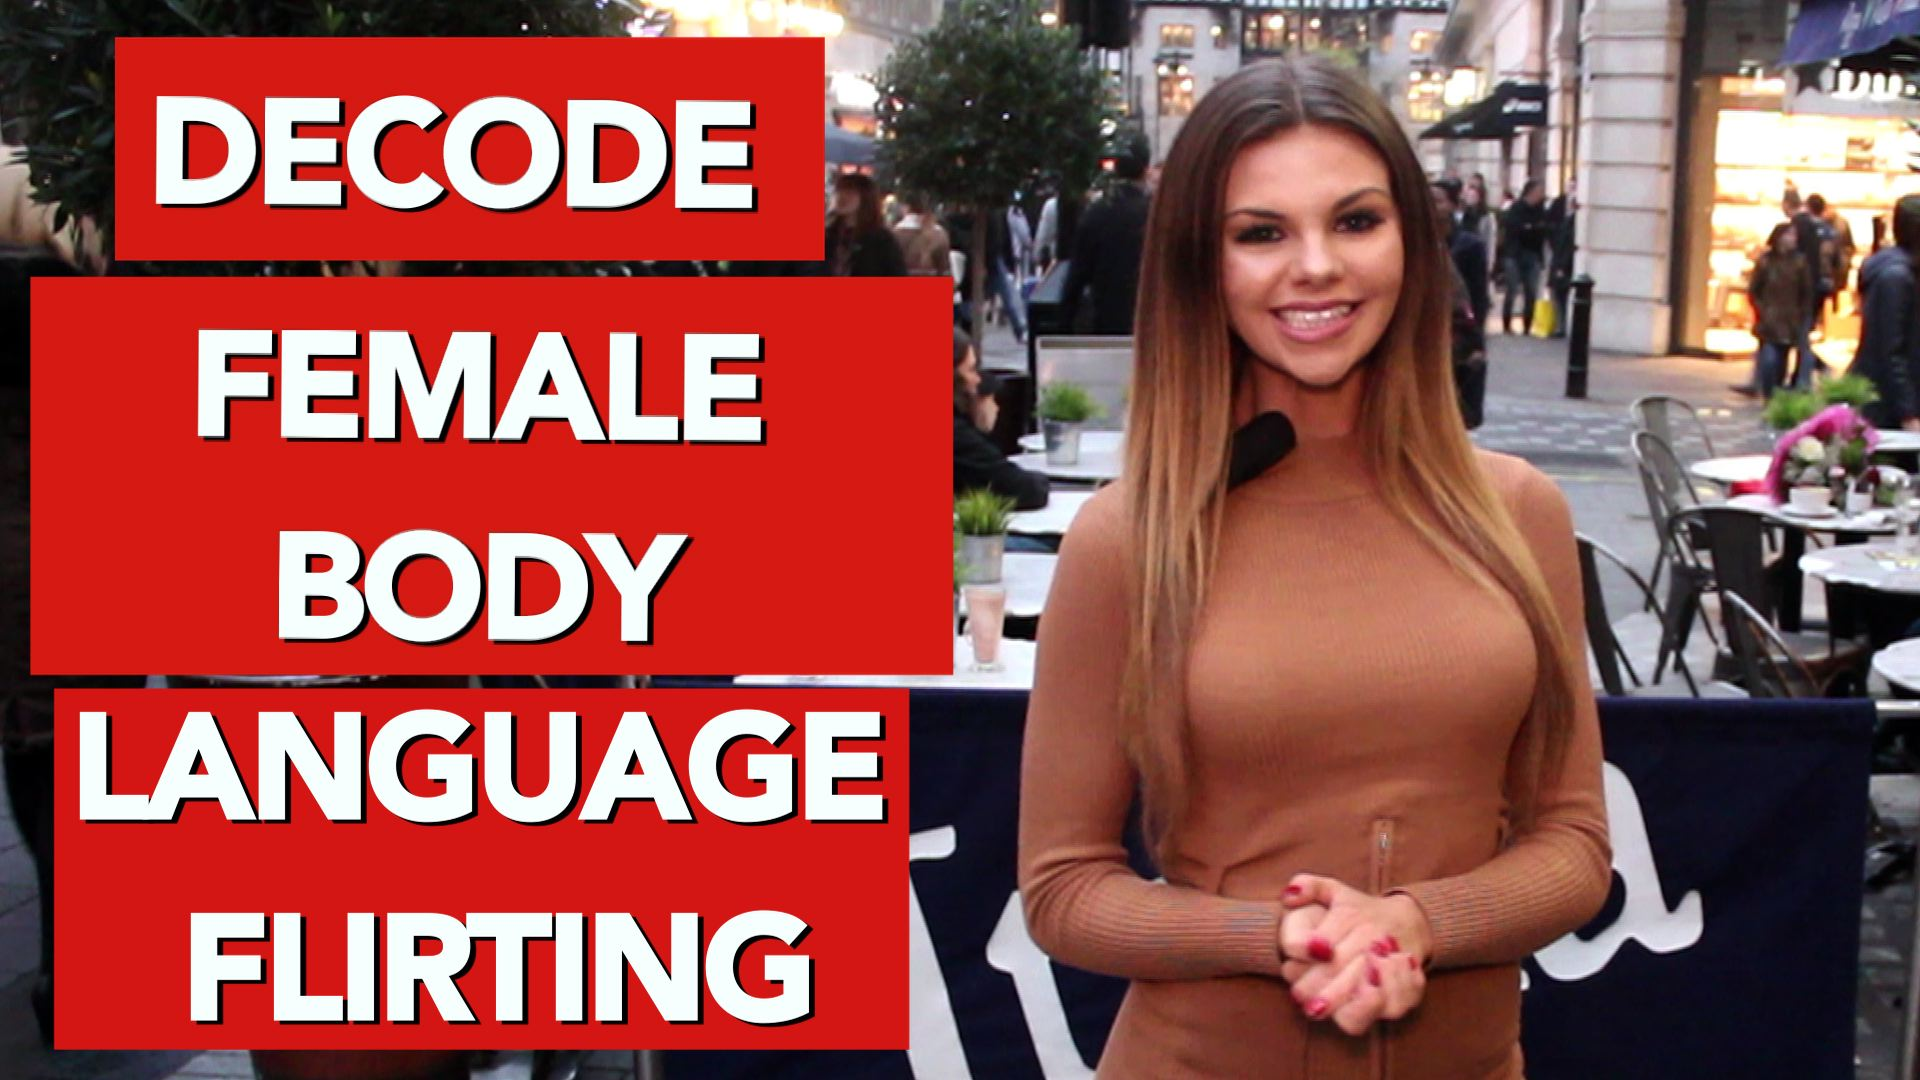 Decode female body language flirting